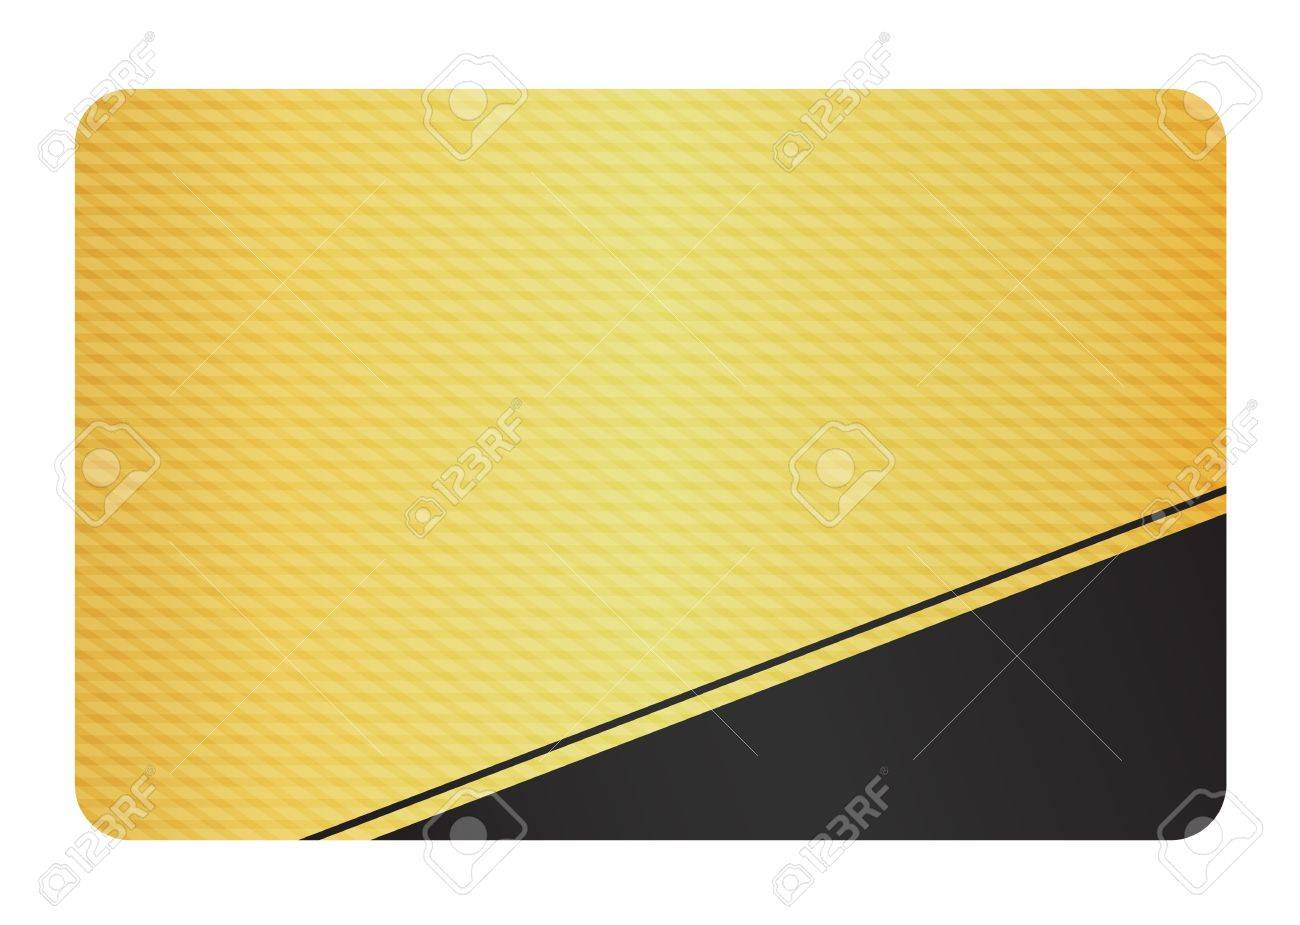 Golden Business Card with Modern Texture and Black Corner Stock Vector - 16823082